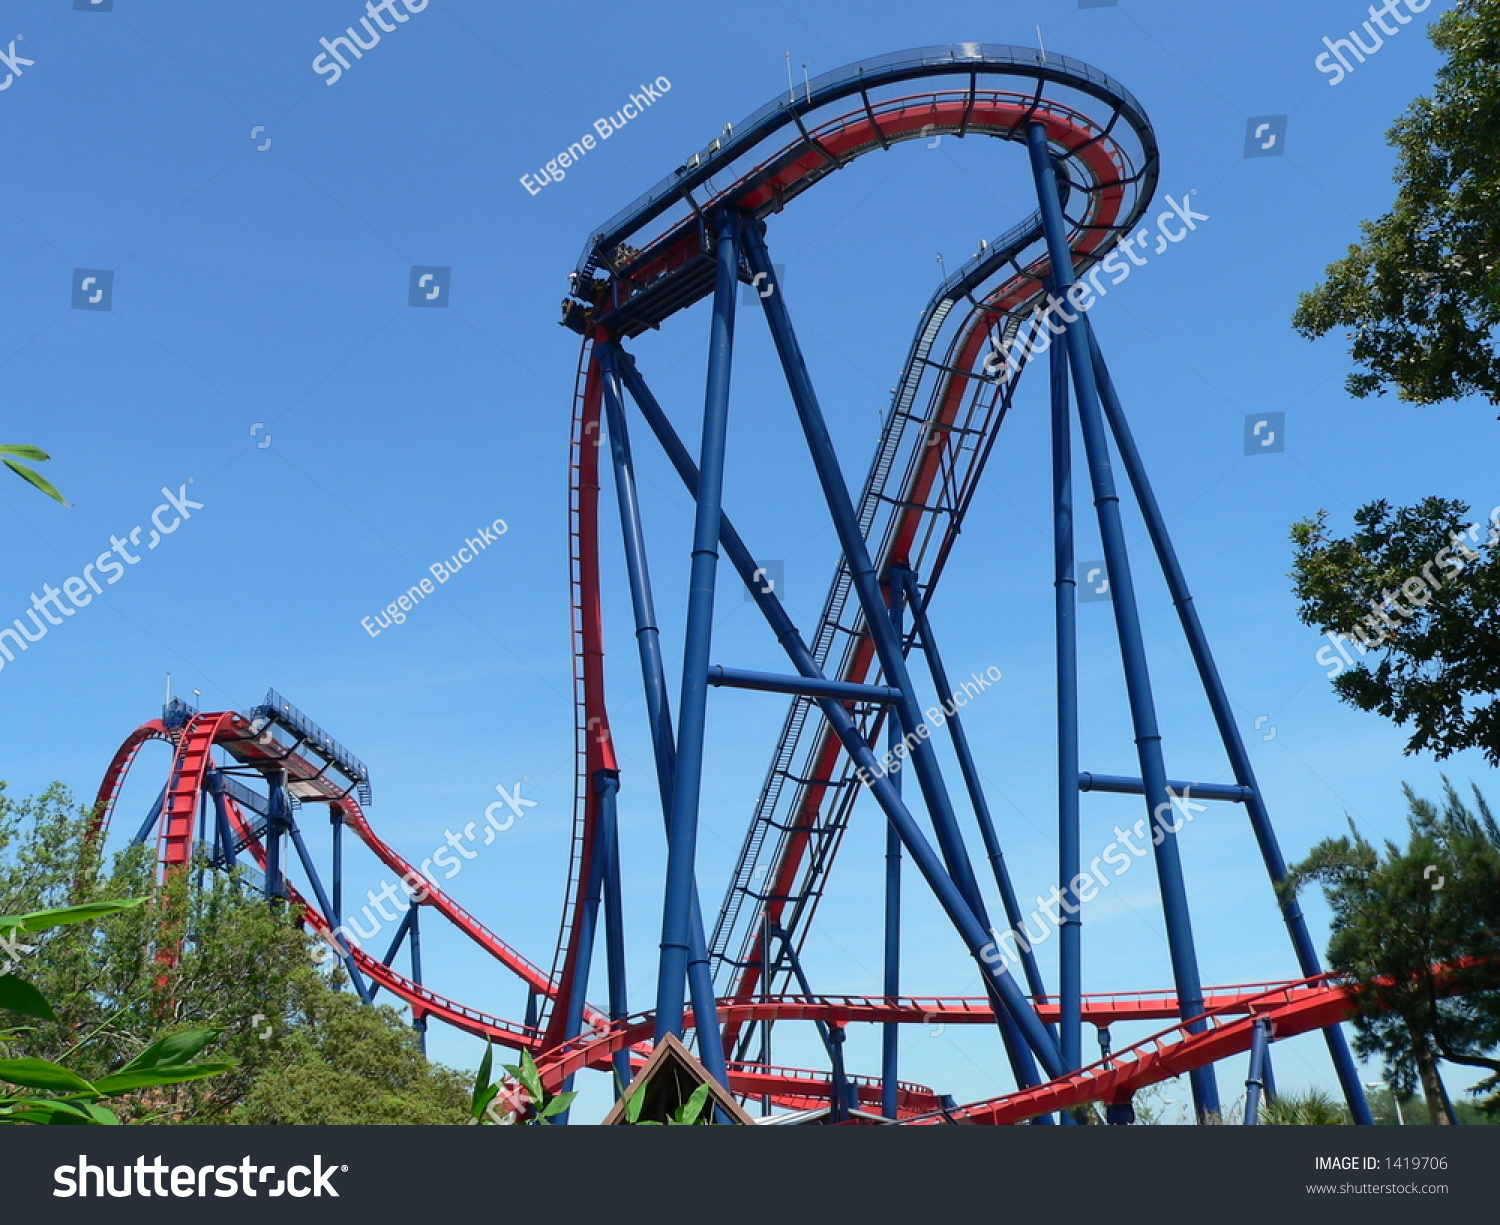 Sheikra roller coaster busch gardens tampa stock photo - Roller coasters at busch gardens ...